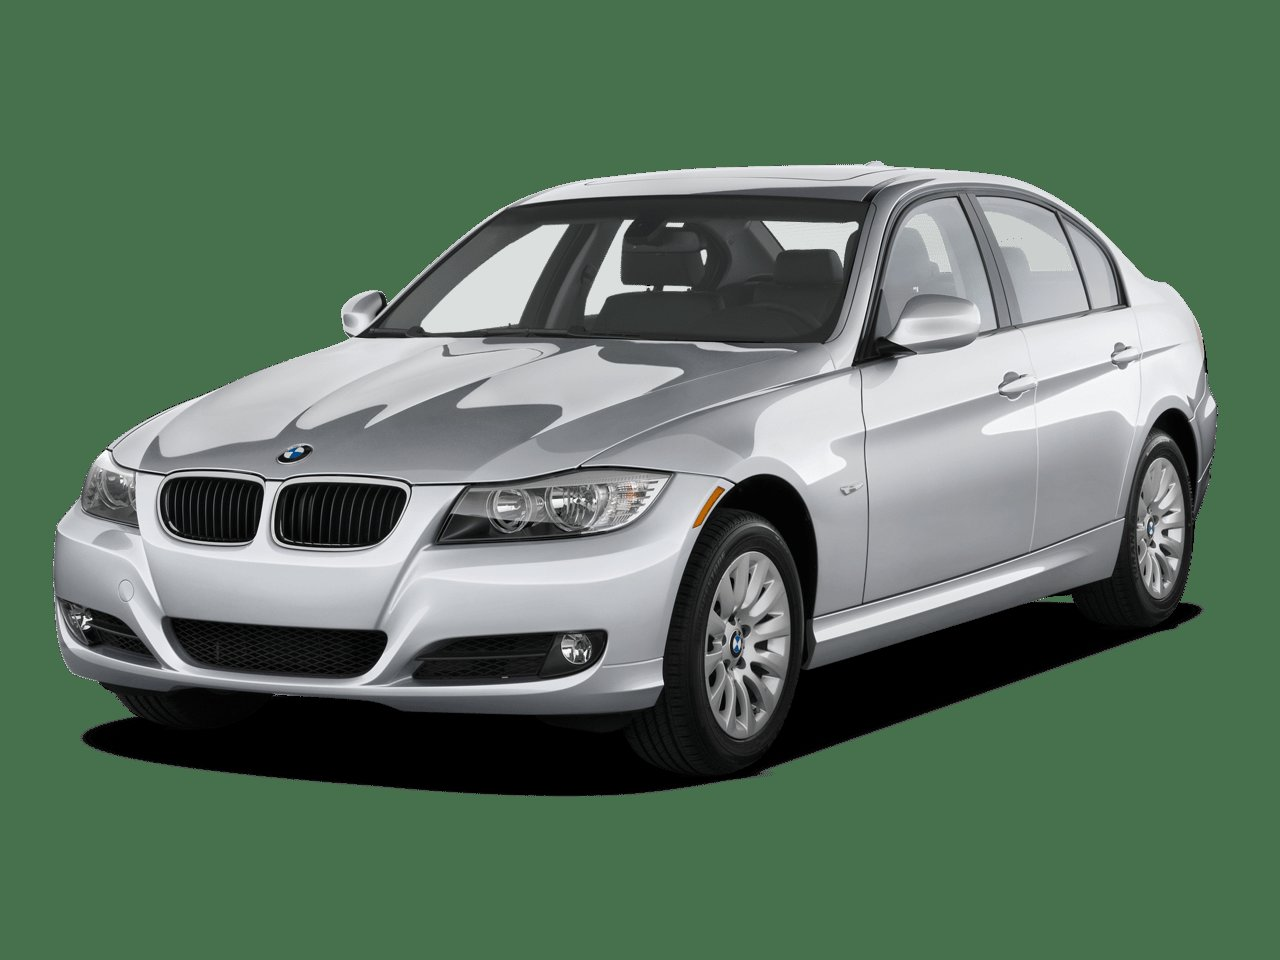 Latest Bmw Png Images Free Download